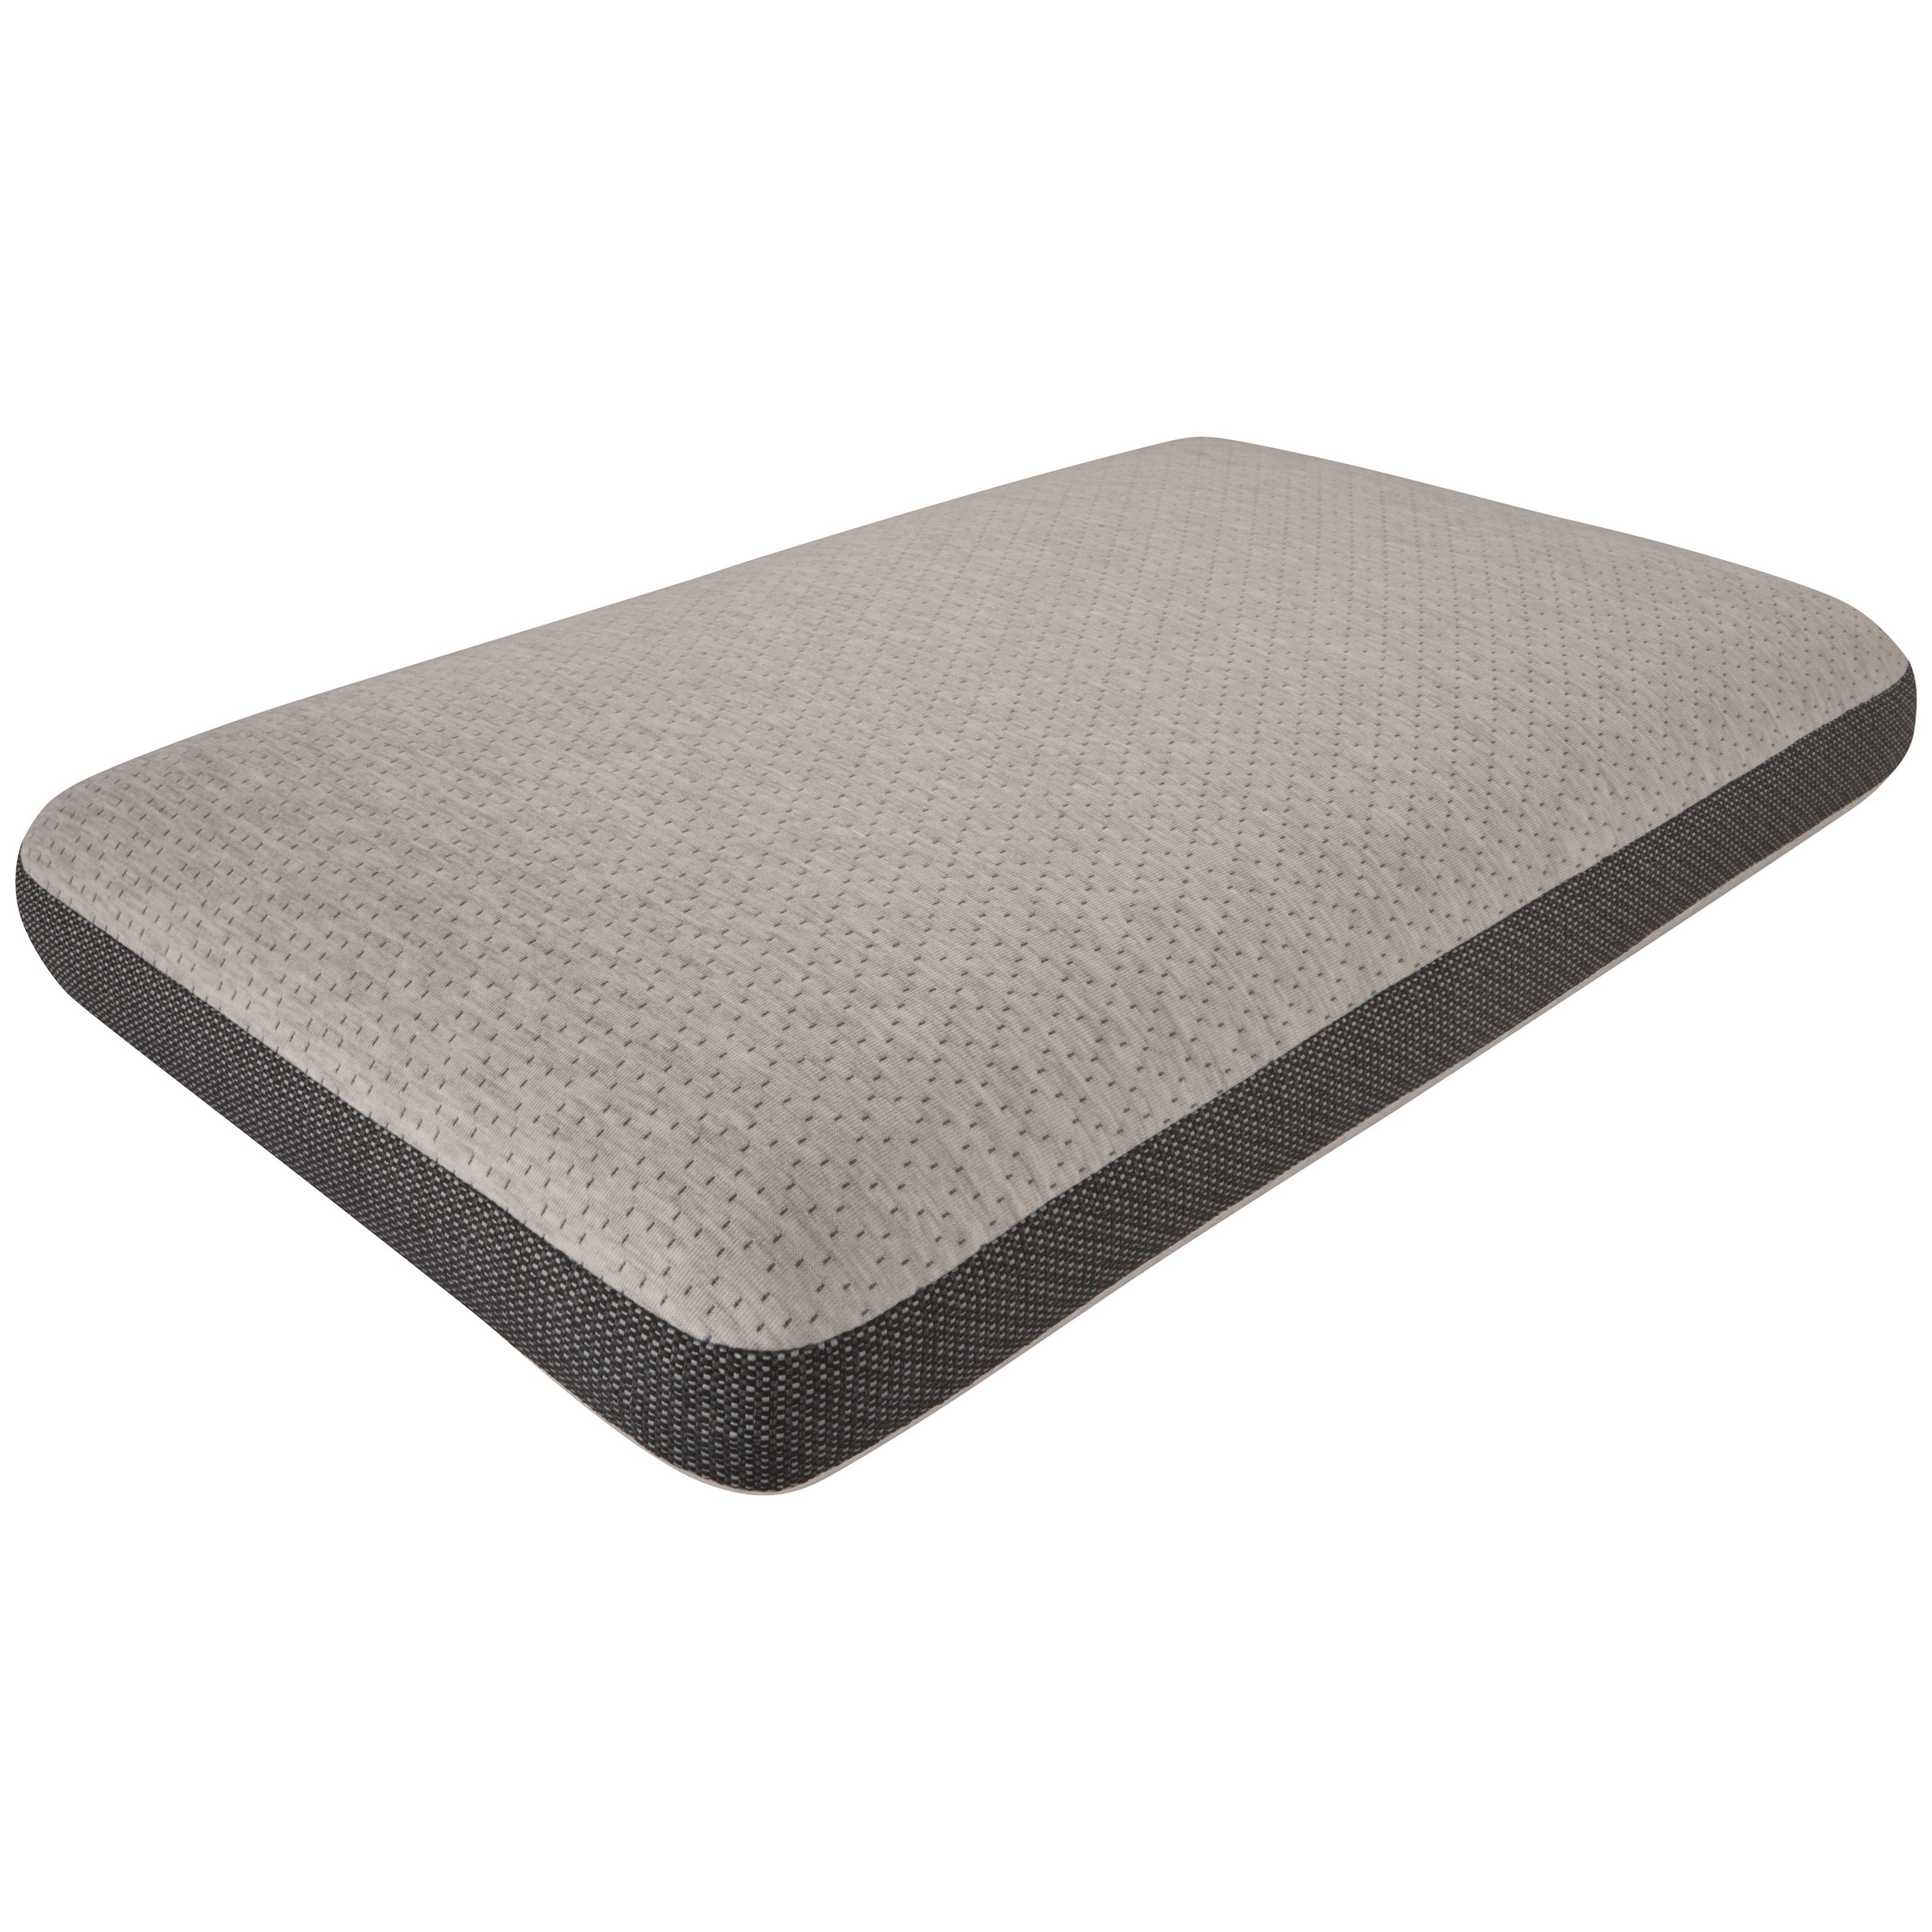 """Absolute Beauty Pillow 5"""" Profile All Position Memory Foam Pillow by Beautyrest at Becker Furniture"""